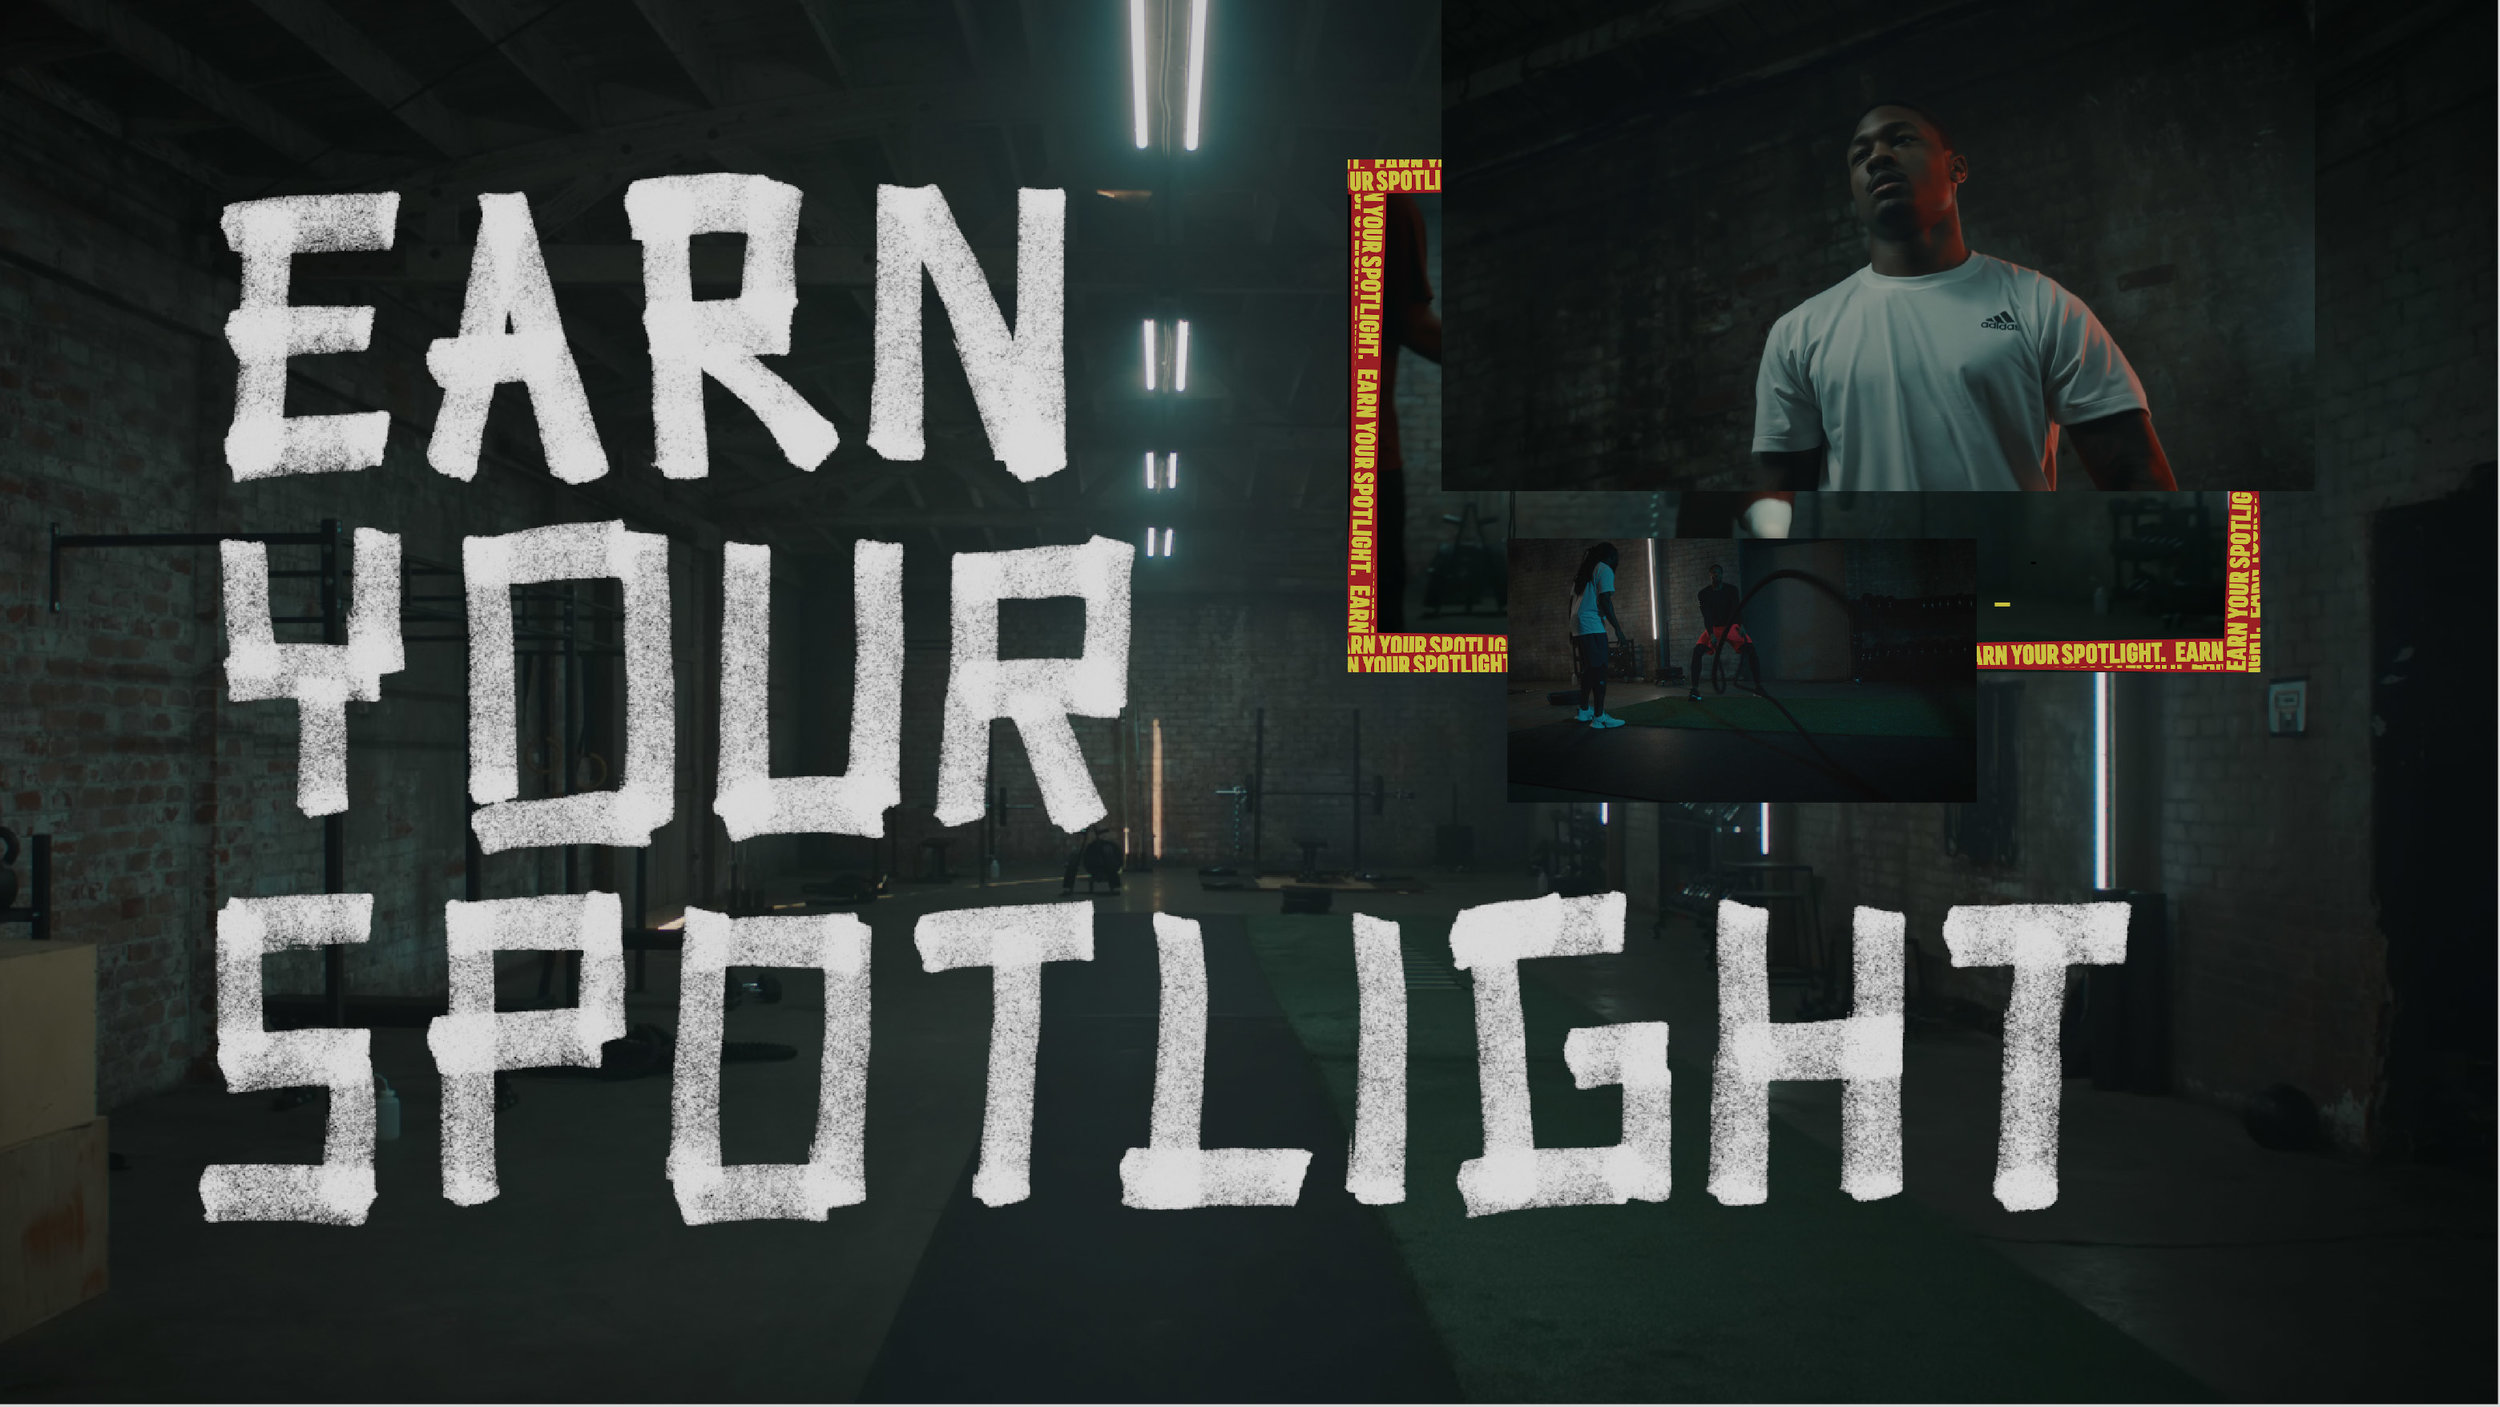 adidas Training and athletics.  Earn Your Spotlight content campaign